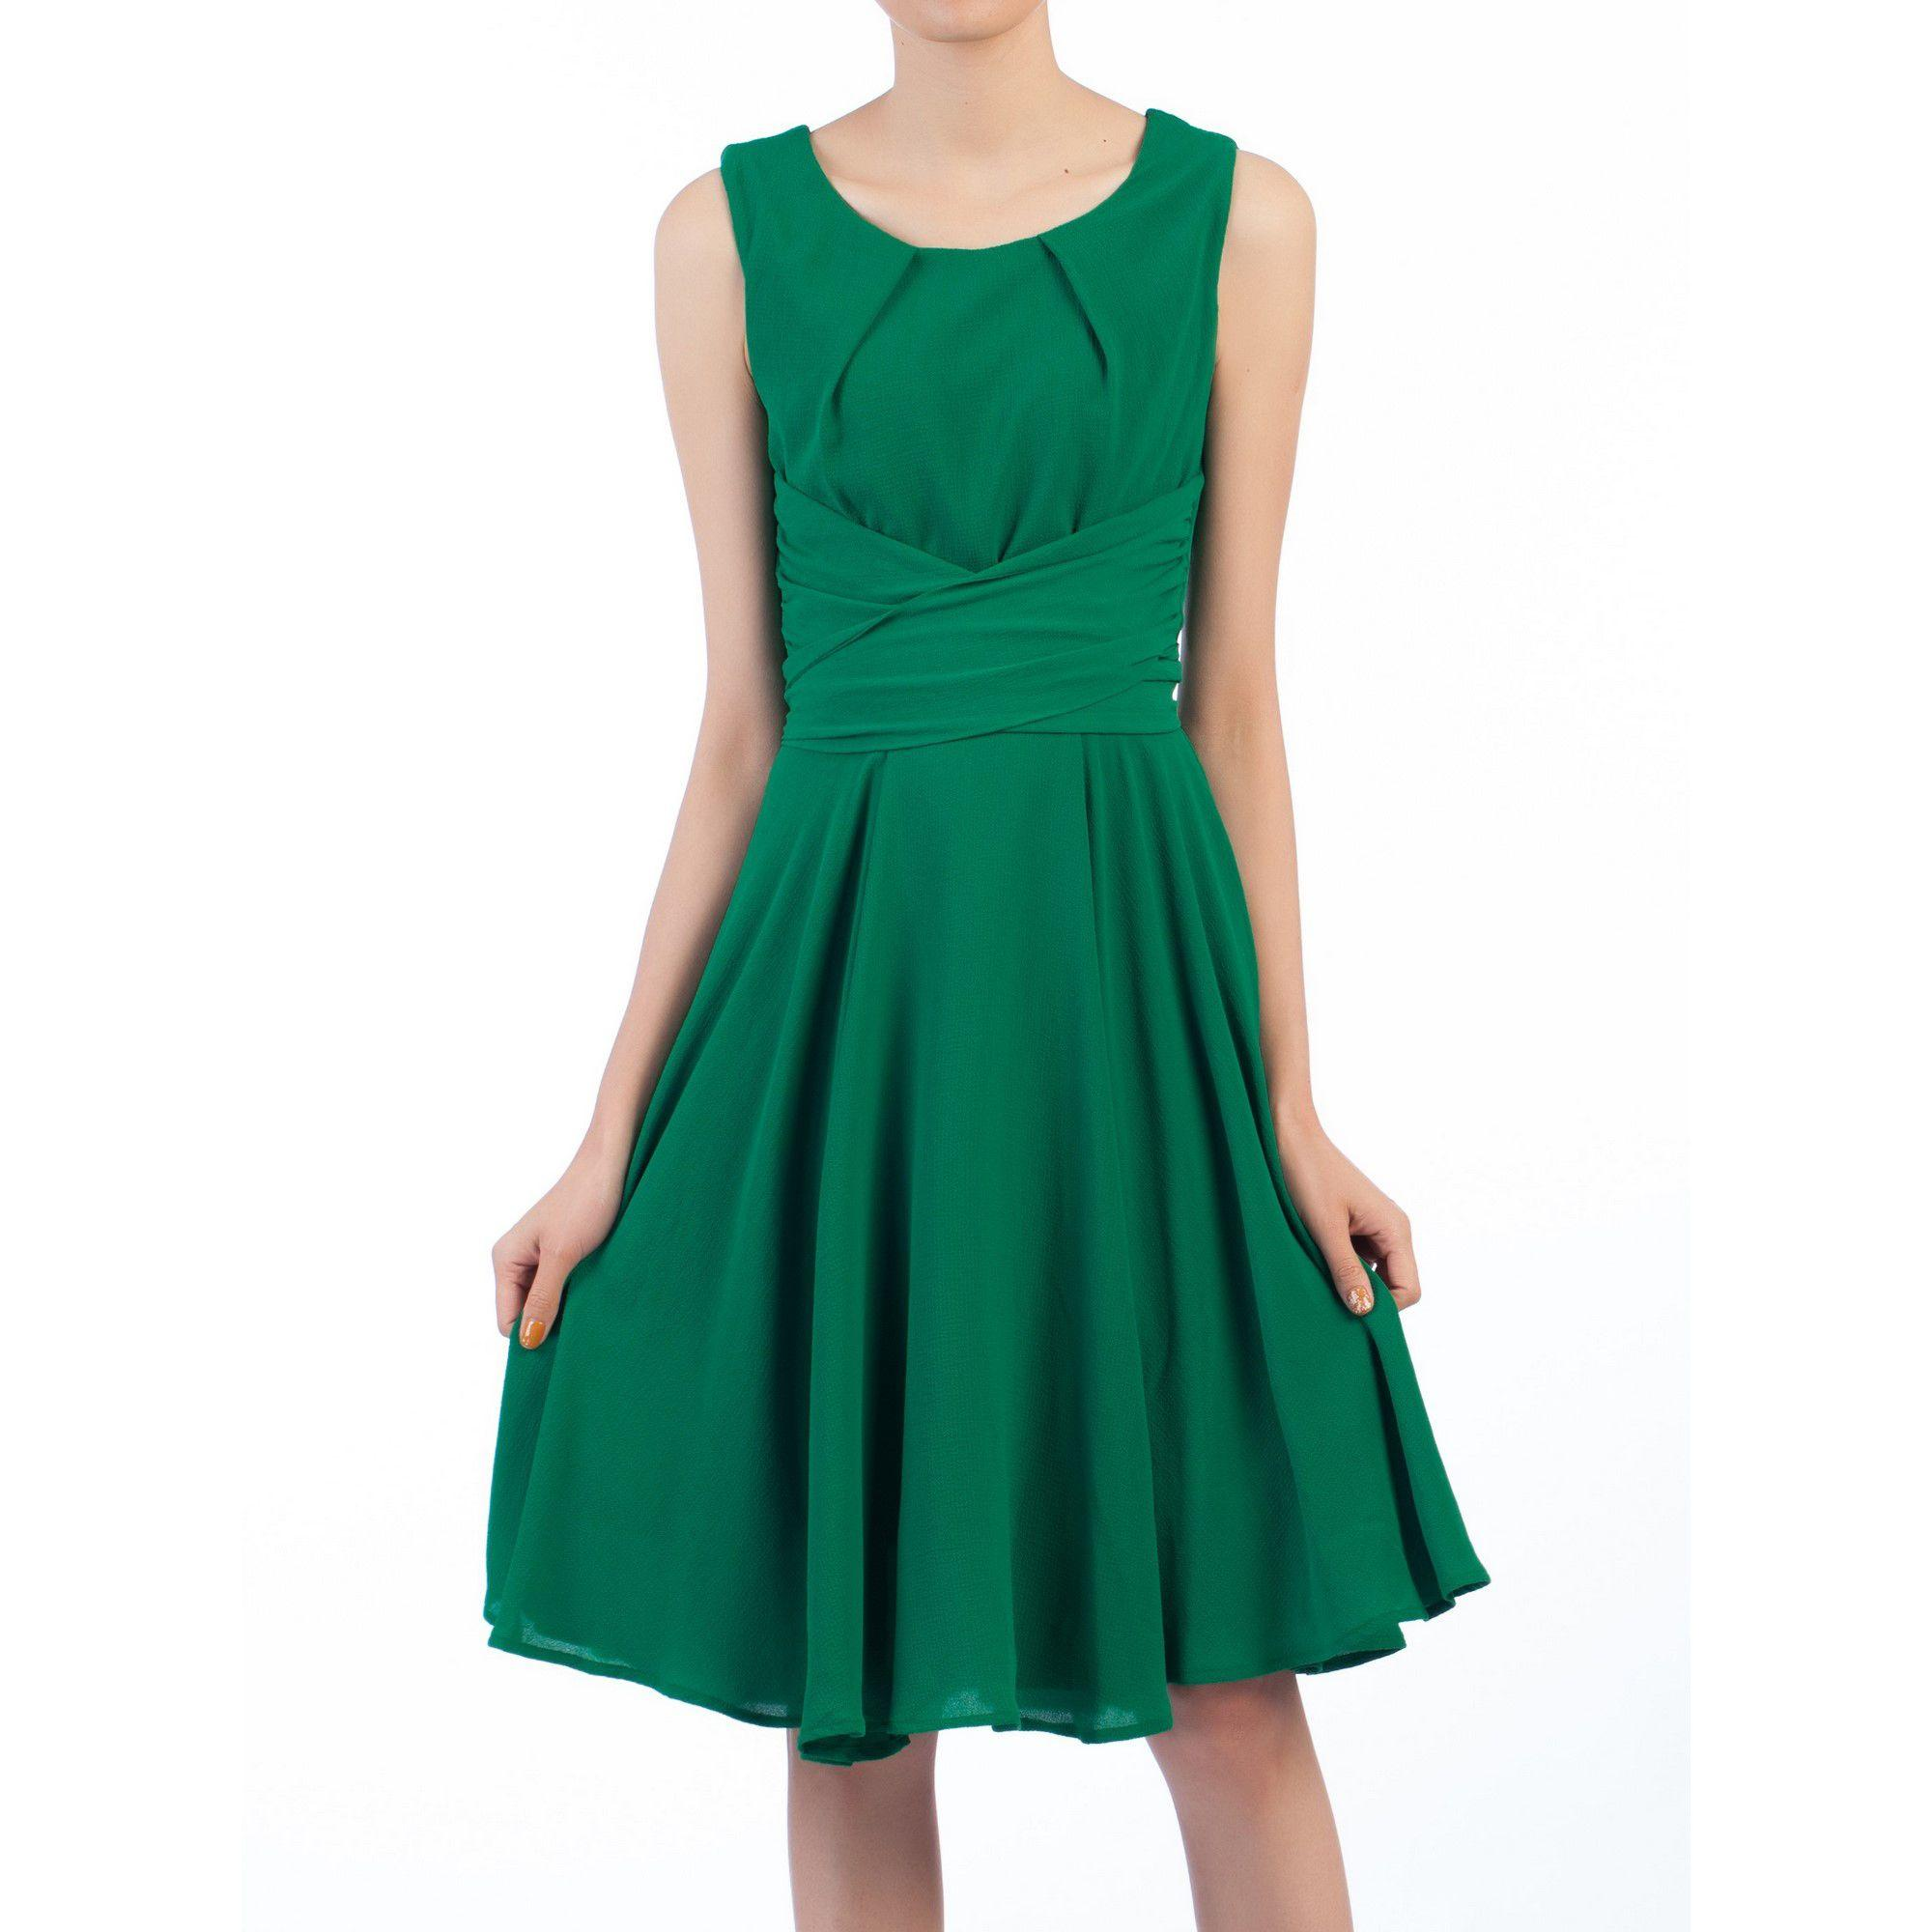 c33b7c2d1830 Jolie Moi Green Cross Belted Skater Dress in Green - Save 20% - Lyst